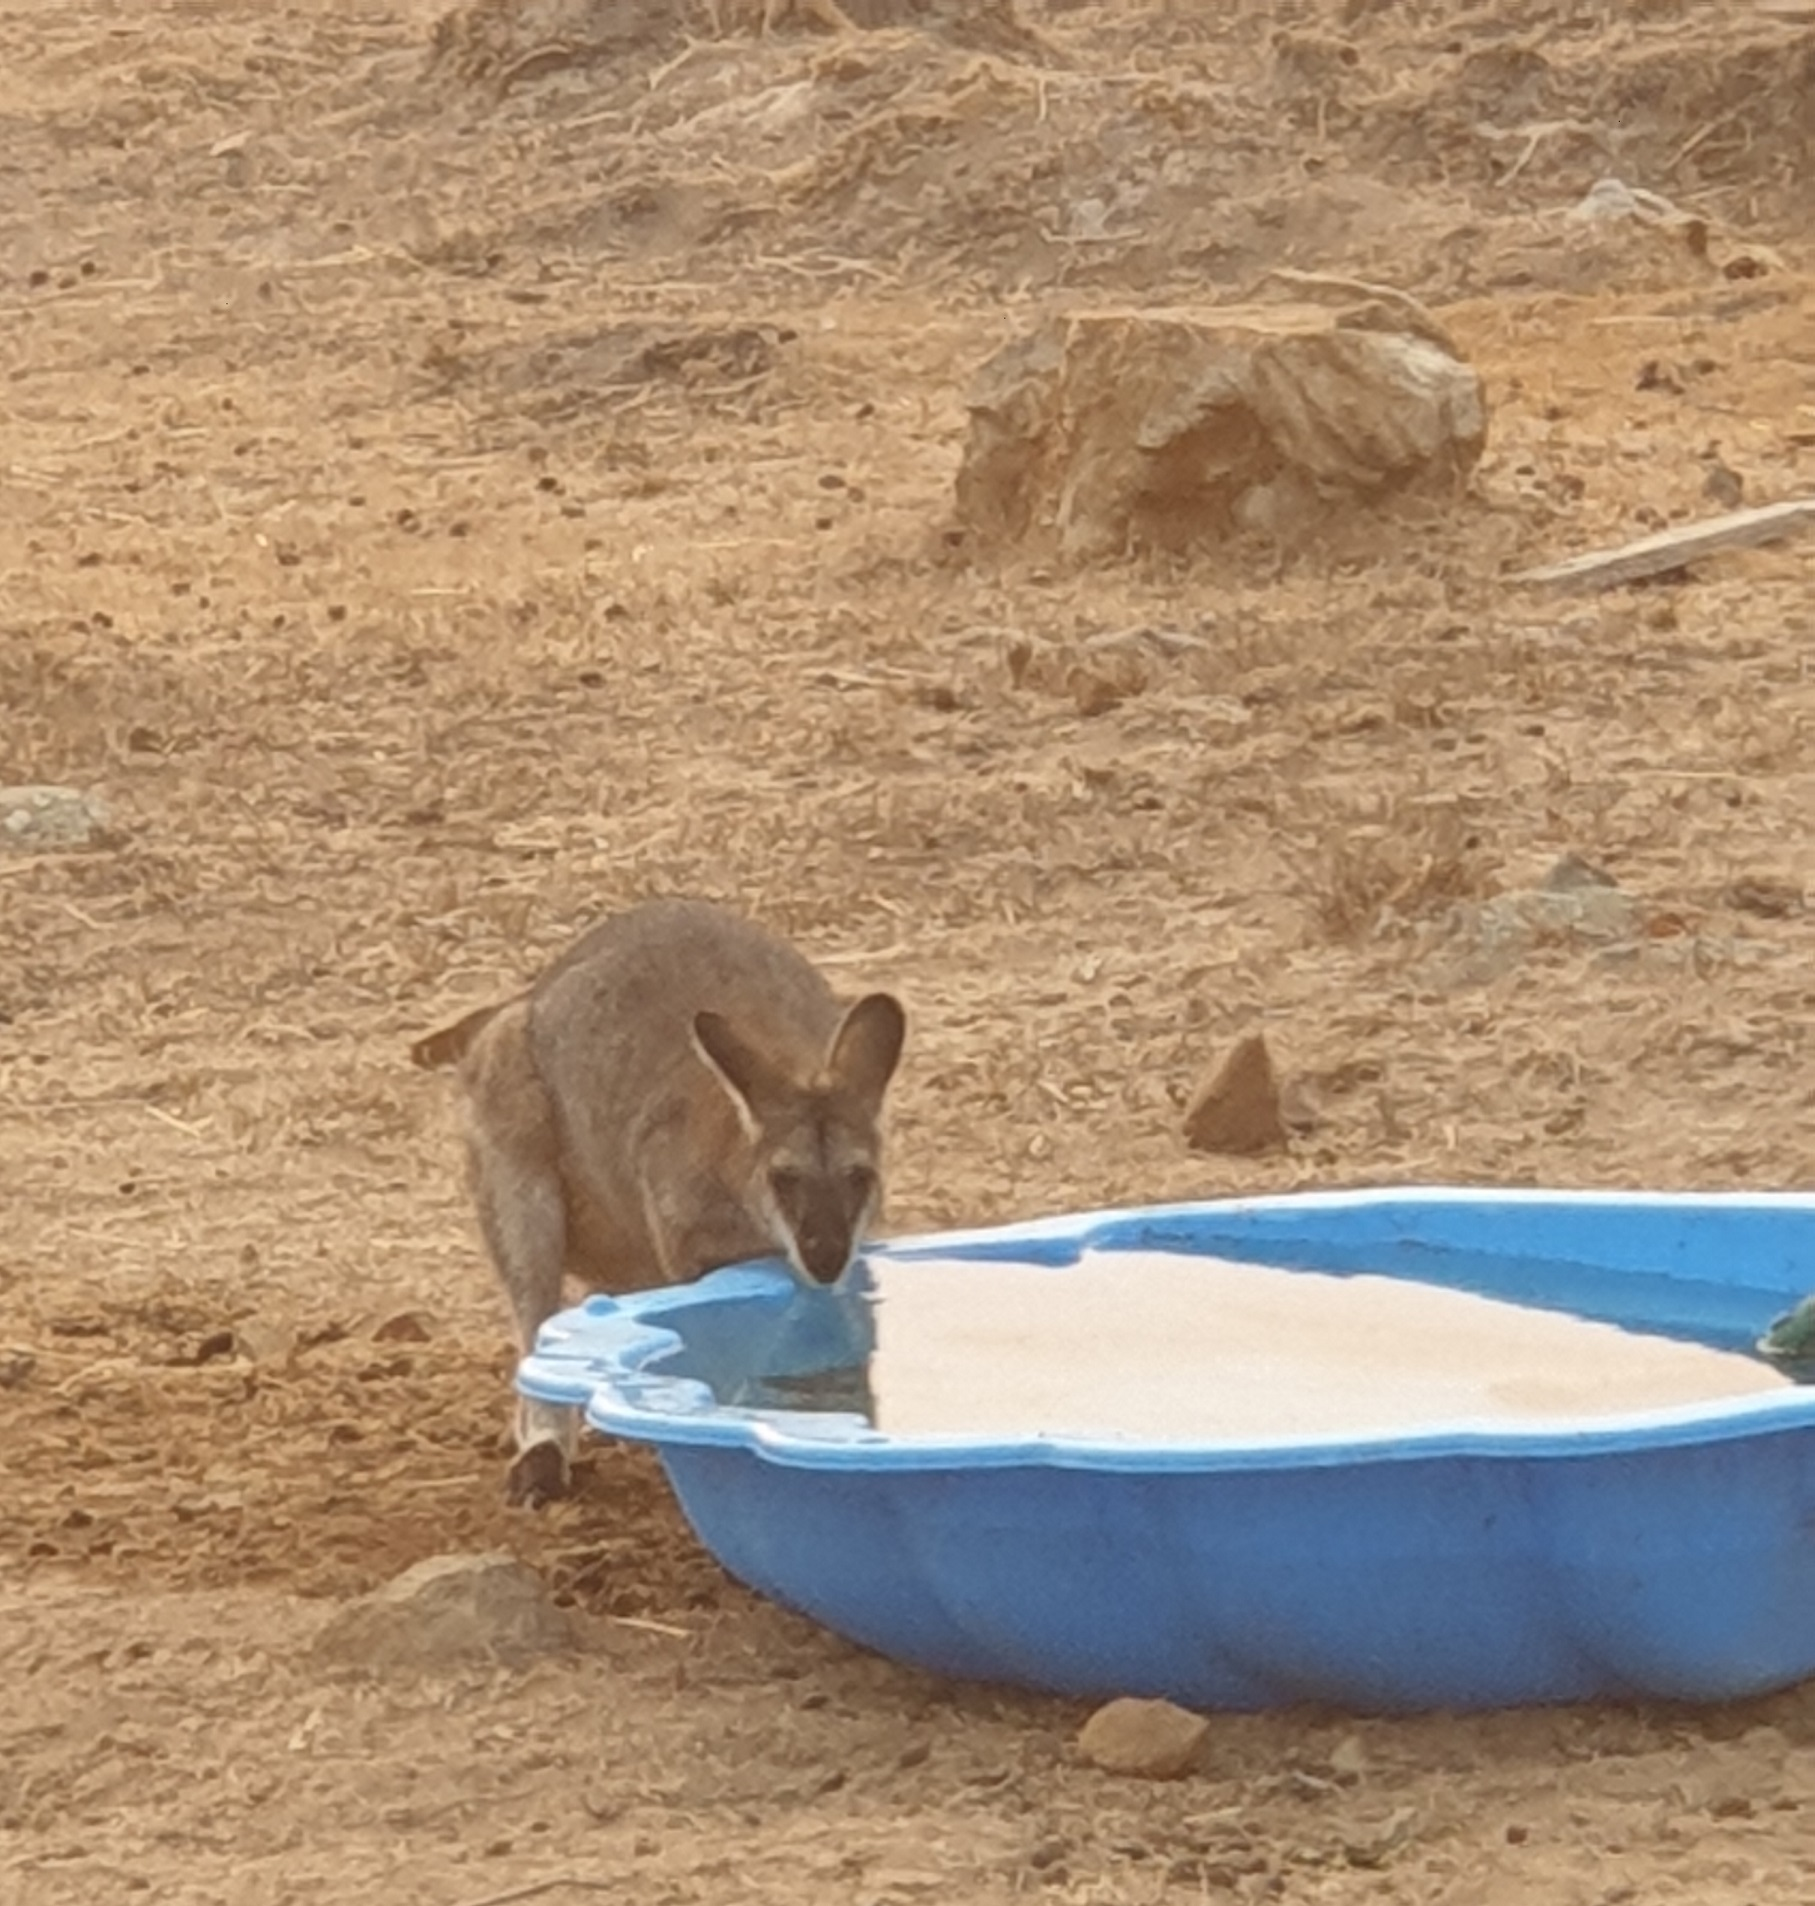 Wallaby drinking from a bowl.